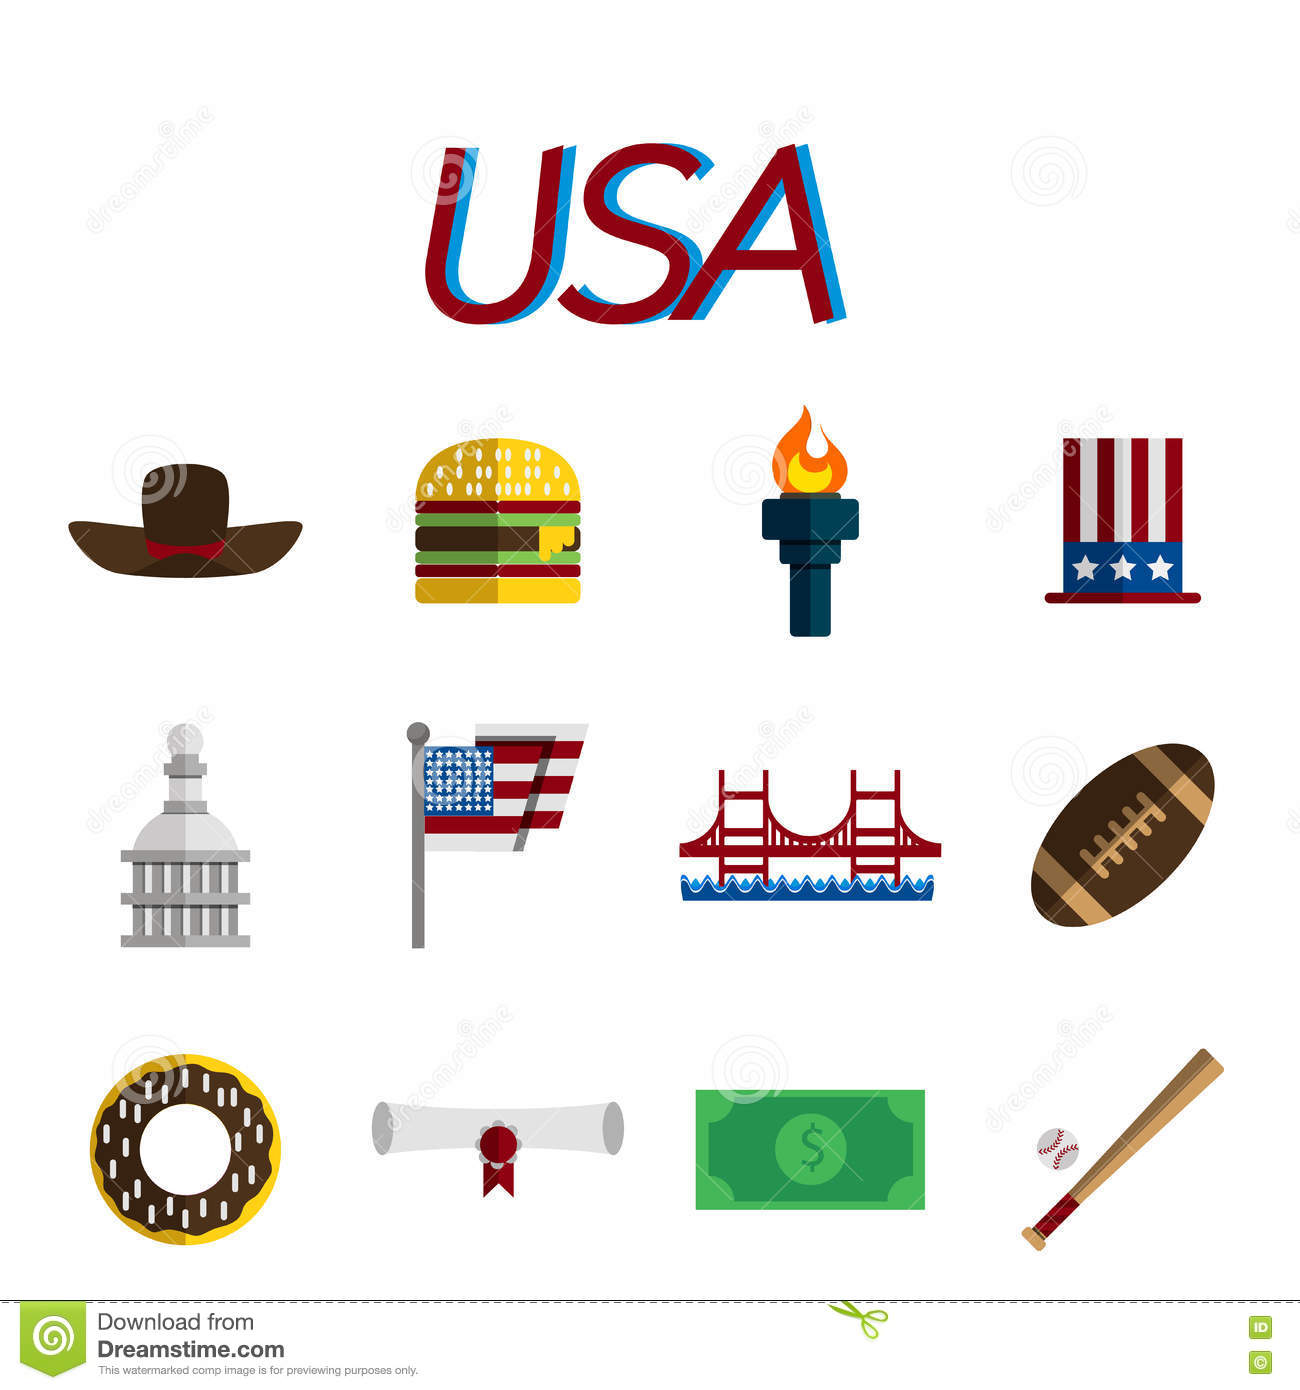 usa-flat-icon-set-vector-design-travel-i